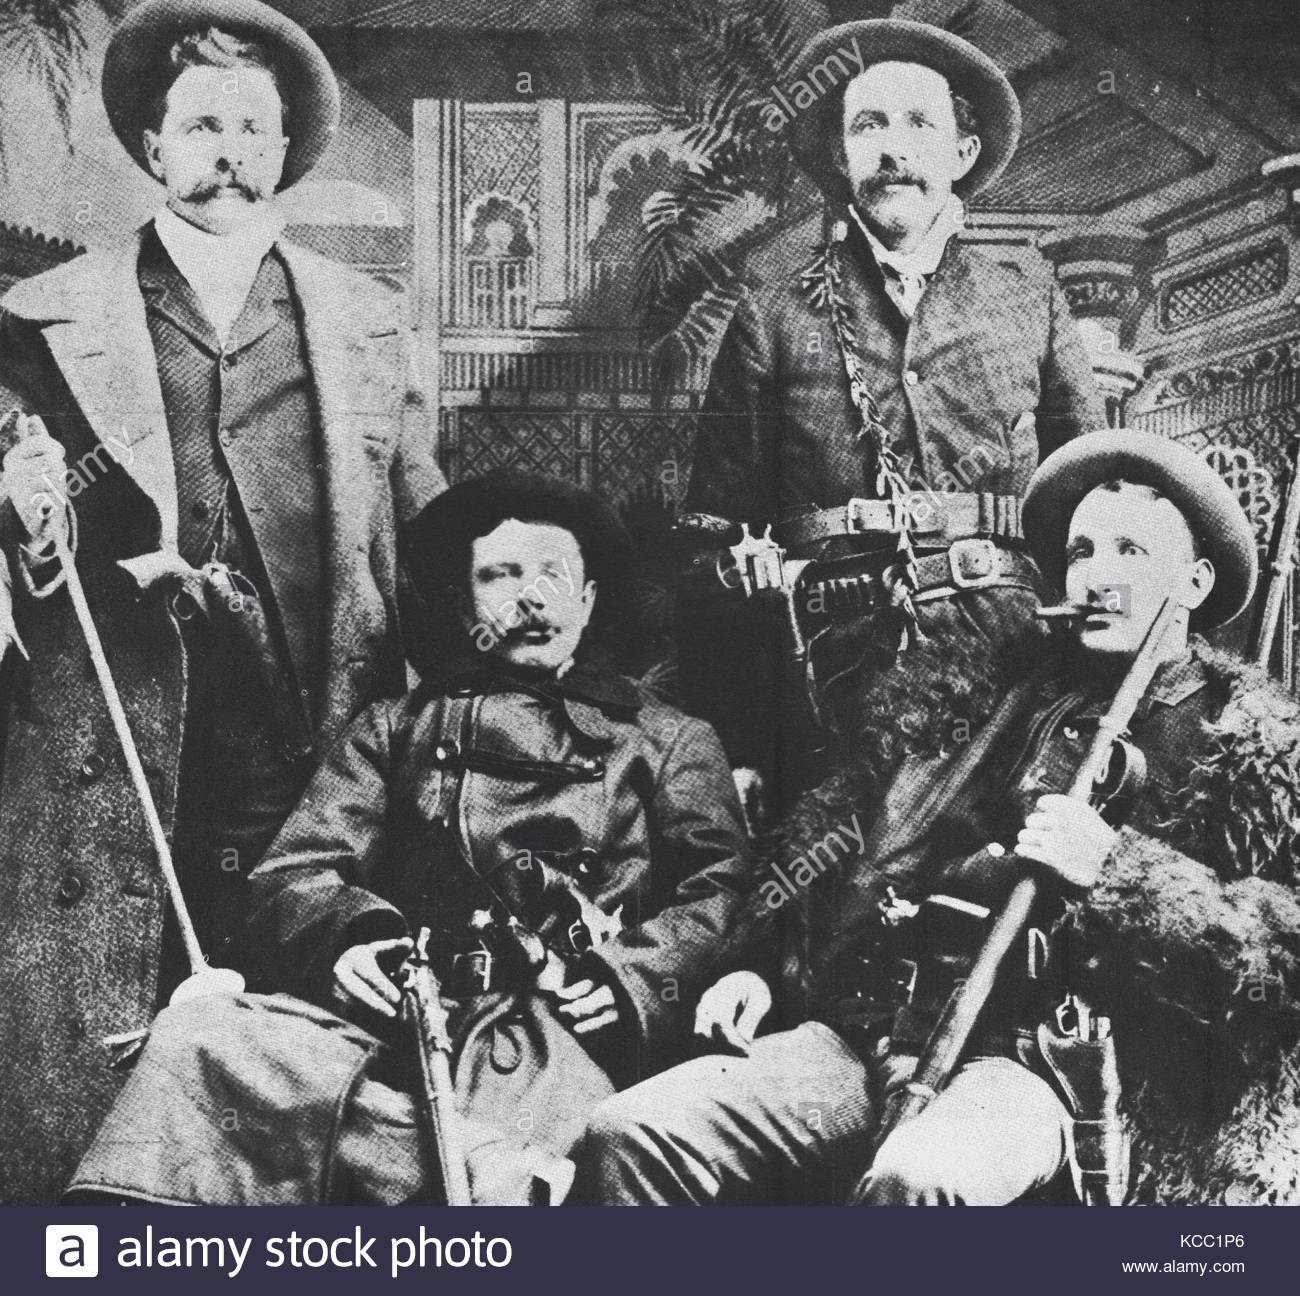 the most notorious outlaws of the west But some of the most badass people in the wild west were, in fact, women who  rose up  she mingled with outlaws and became a horse thief.